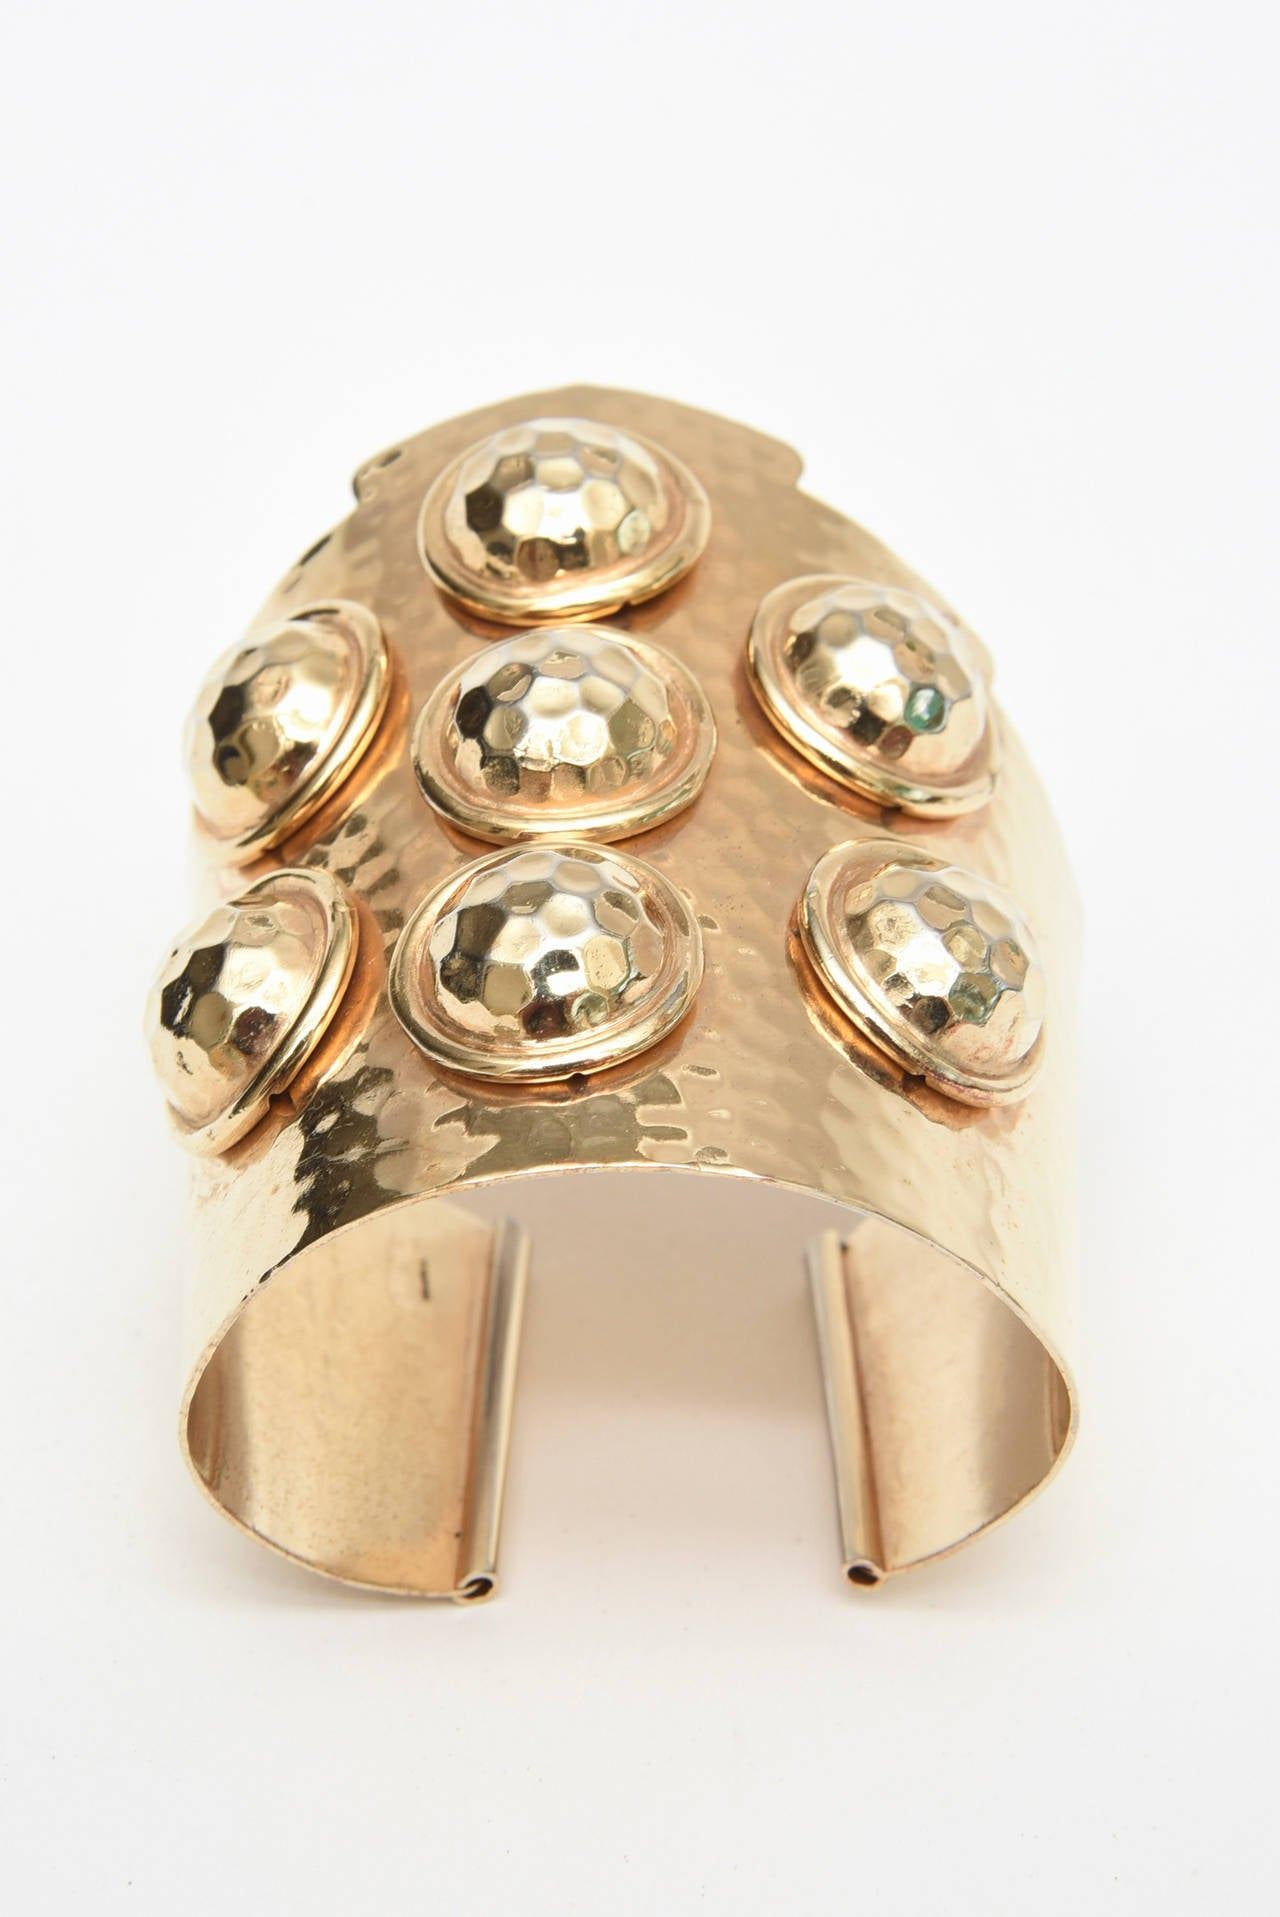 This arresting hand hammered wide and sculptural brass cuff 